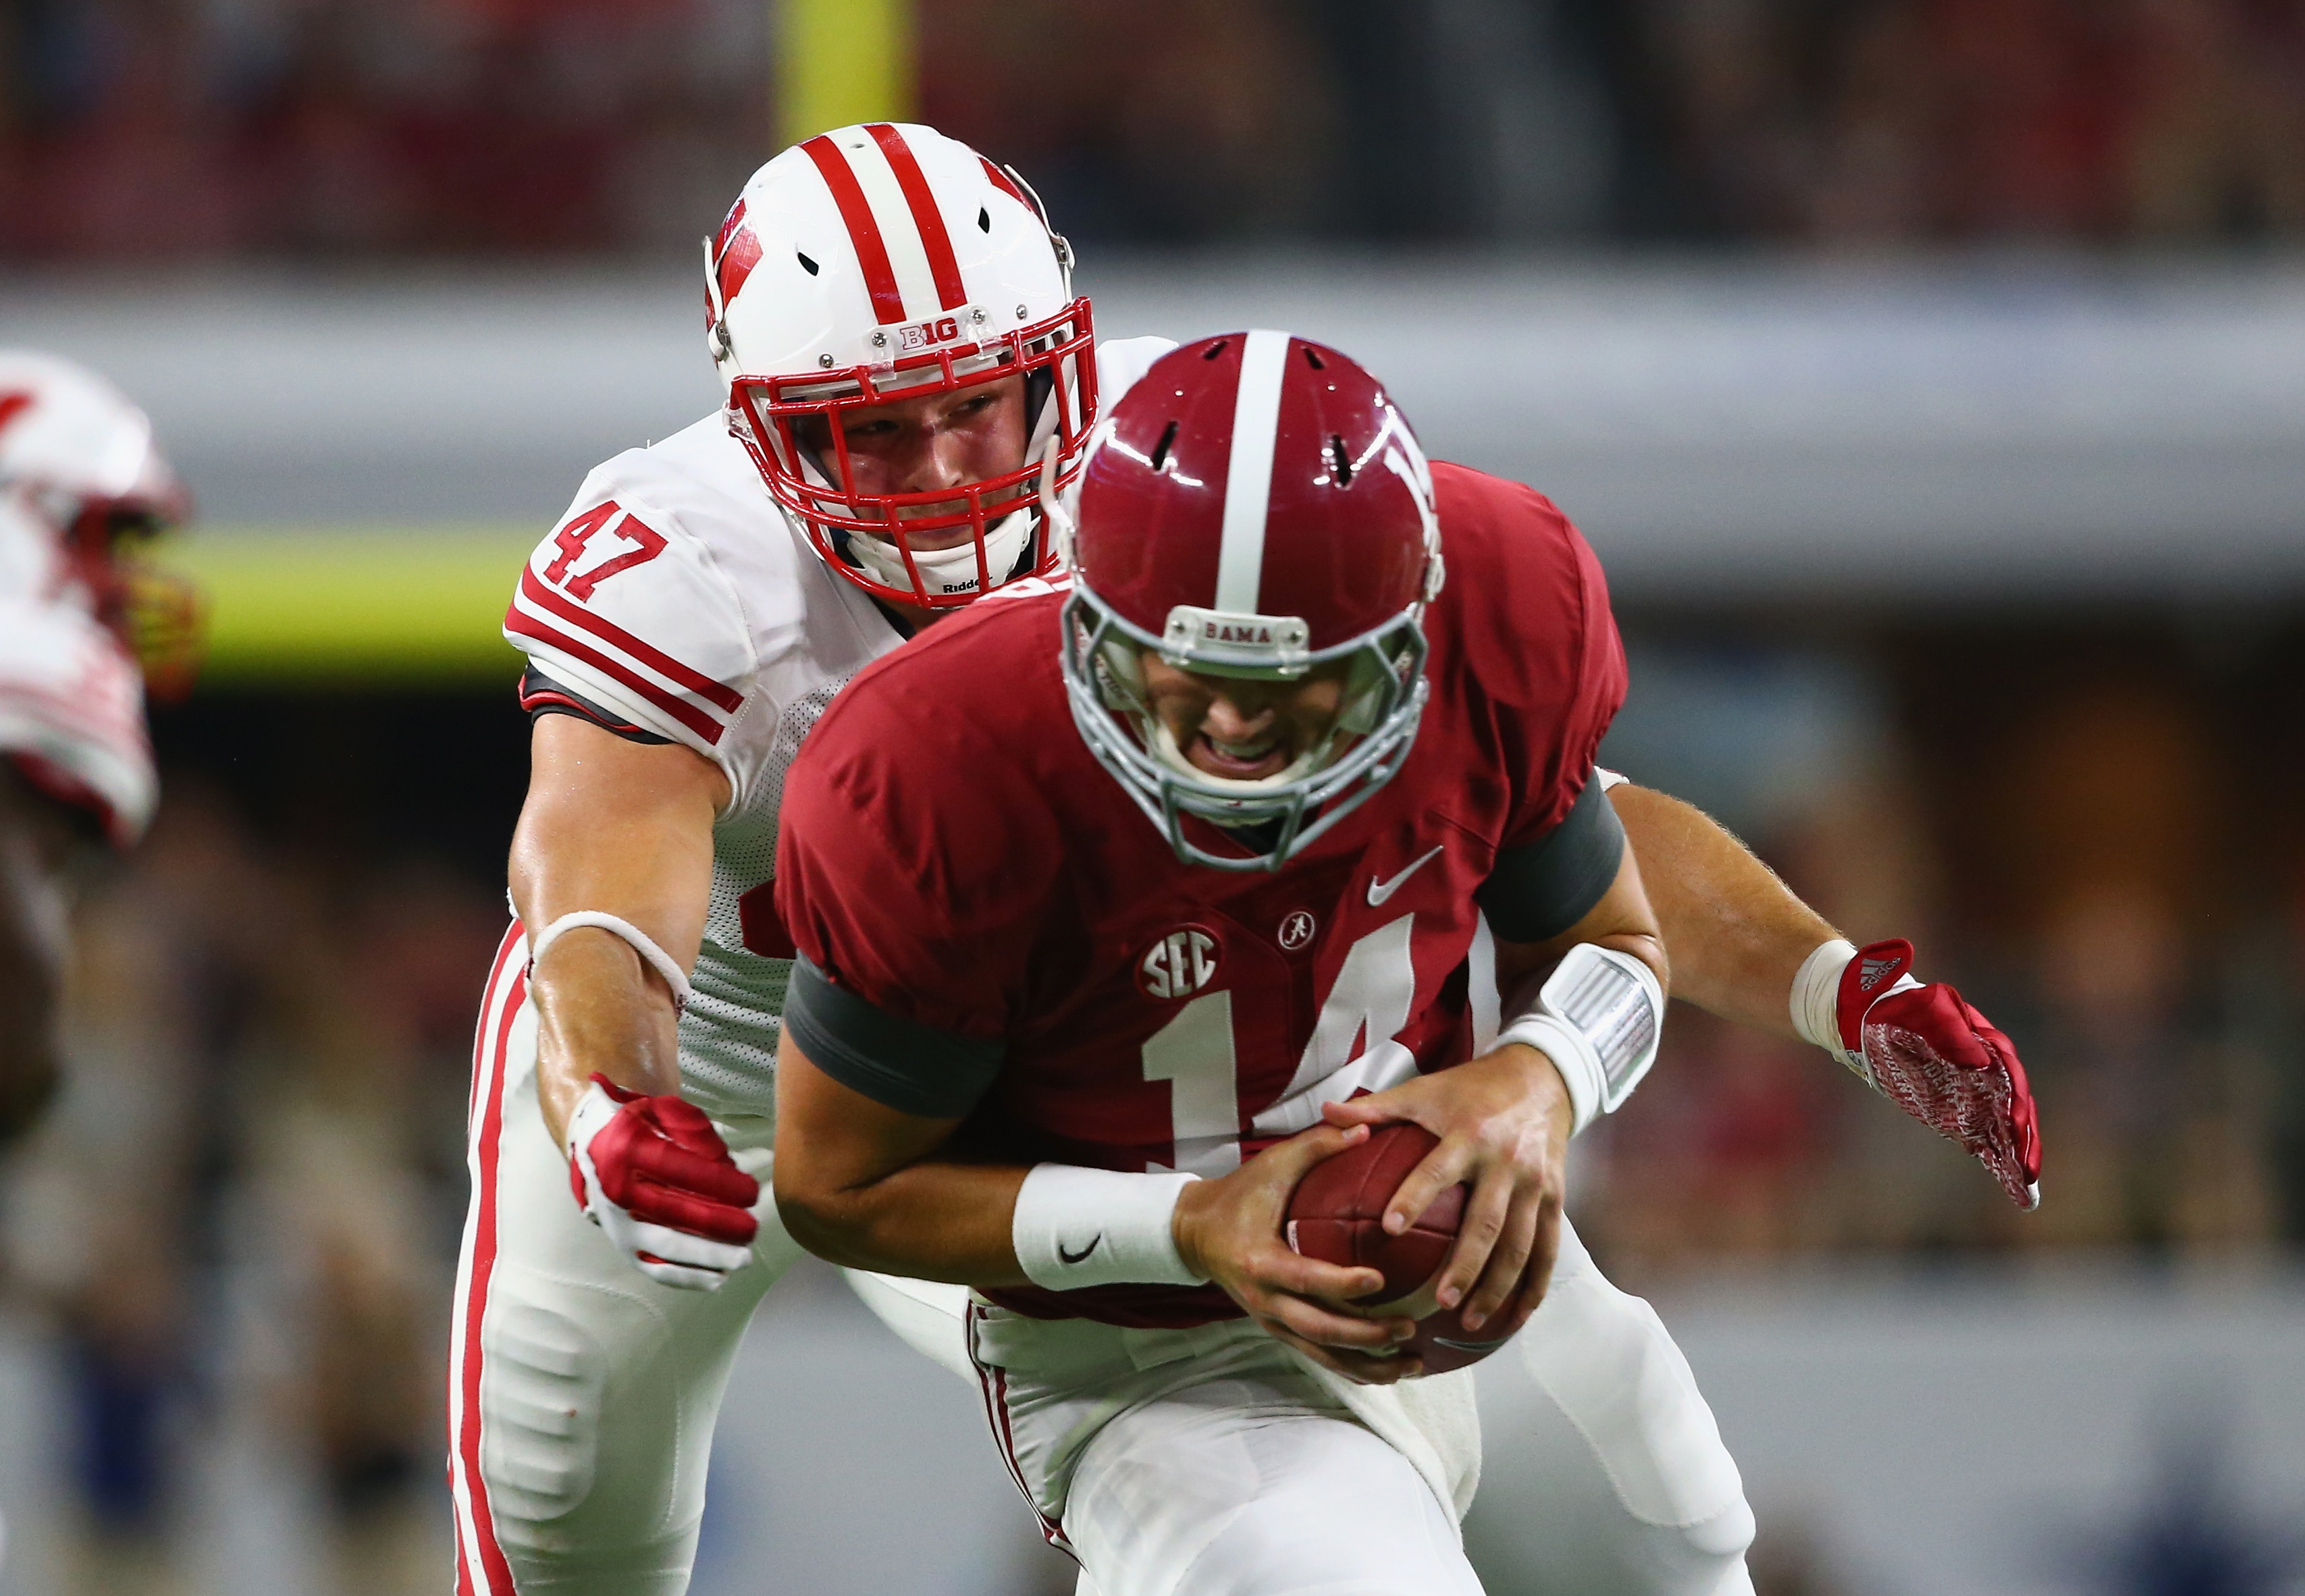 ARLINGTON, TX - SEPTEMBER 05:  Vince Biegel #47 of the Wisconsin Badgers tackles Jake Coker #14 of the Alabama Crimson Tide during the Advocare Classic at AT&T Stadium on September 5, 2015 in Arlington, Texas.  (Photo by Ronald Martinez/Getty Images)